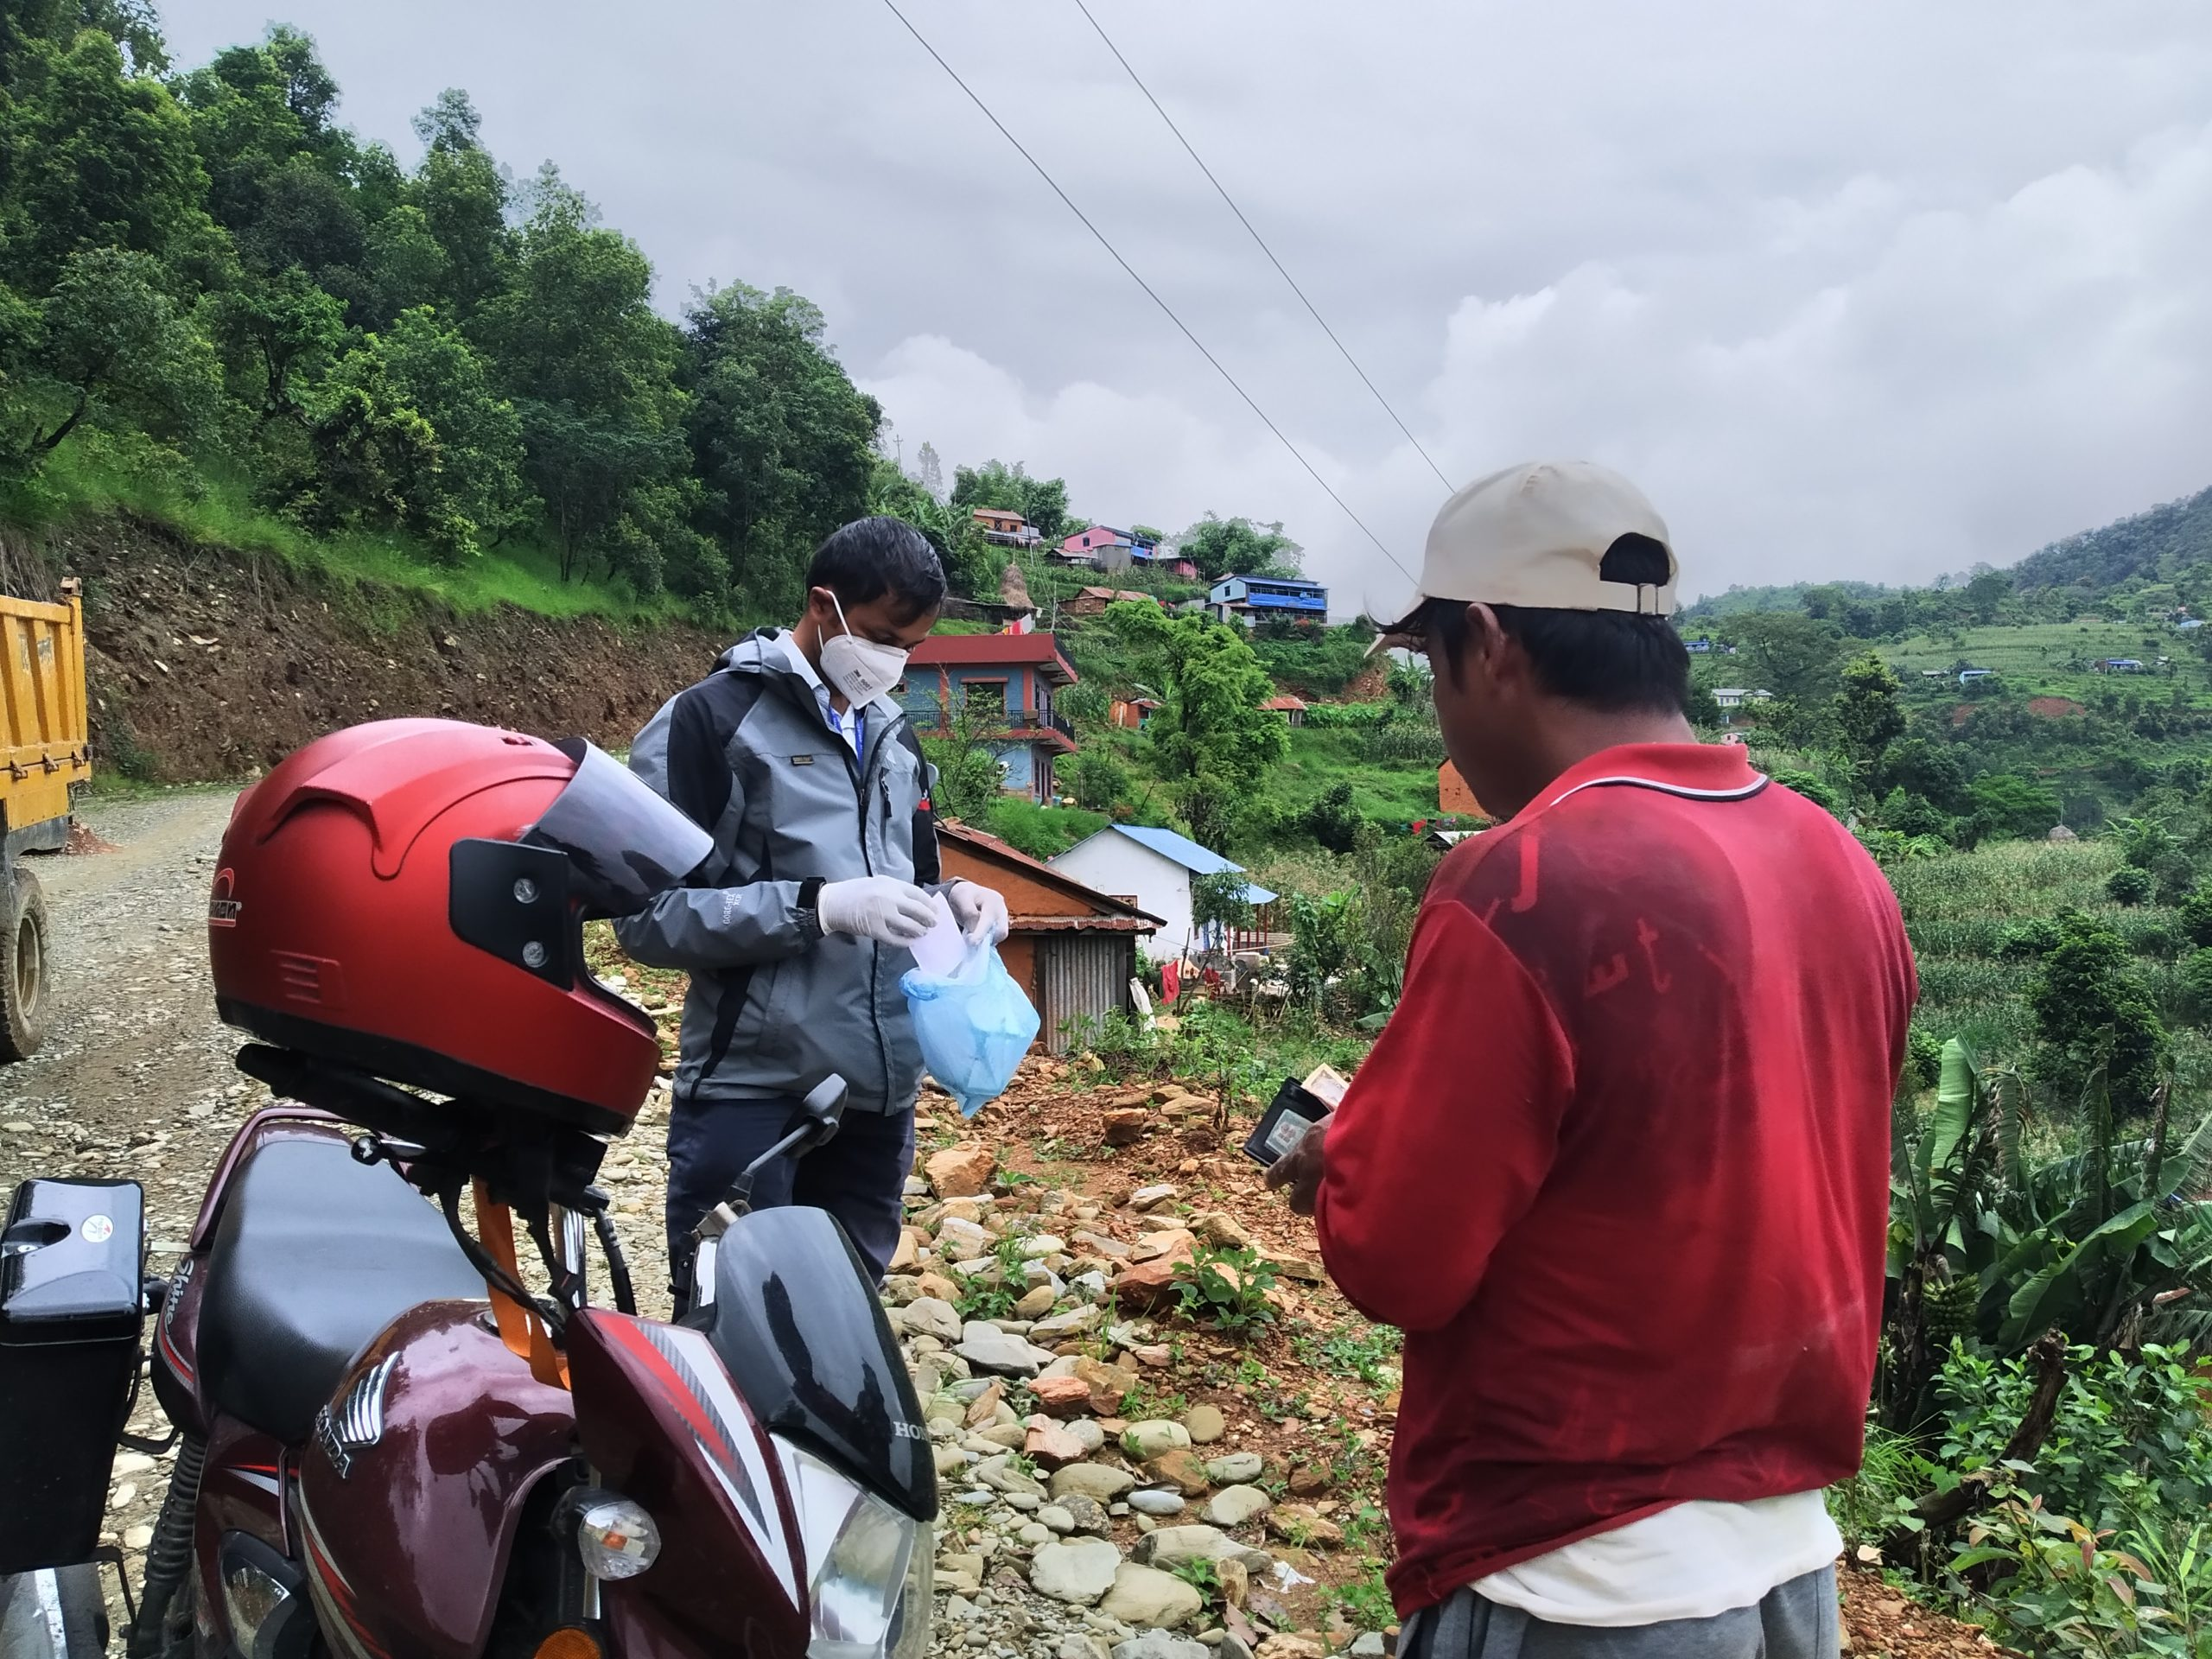 Helmet Doctor Project in Palungtar Municipality